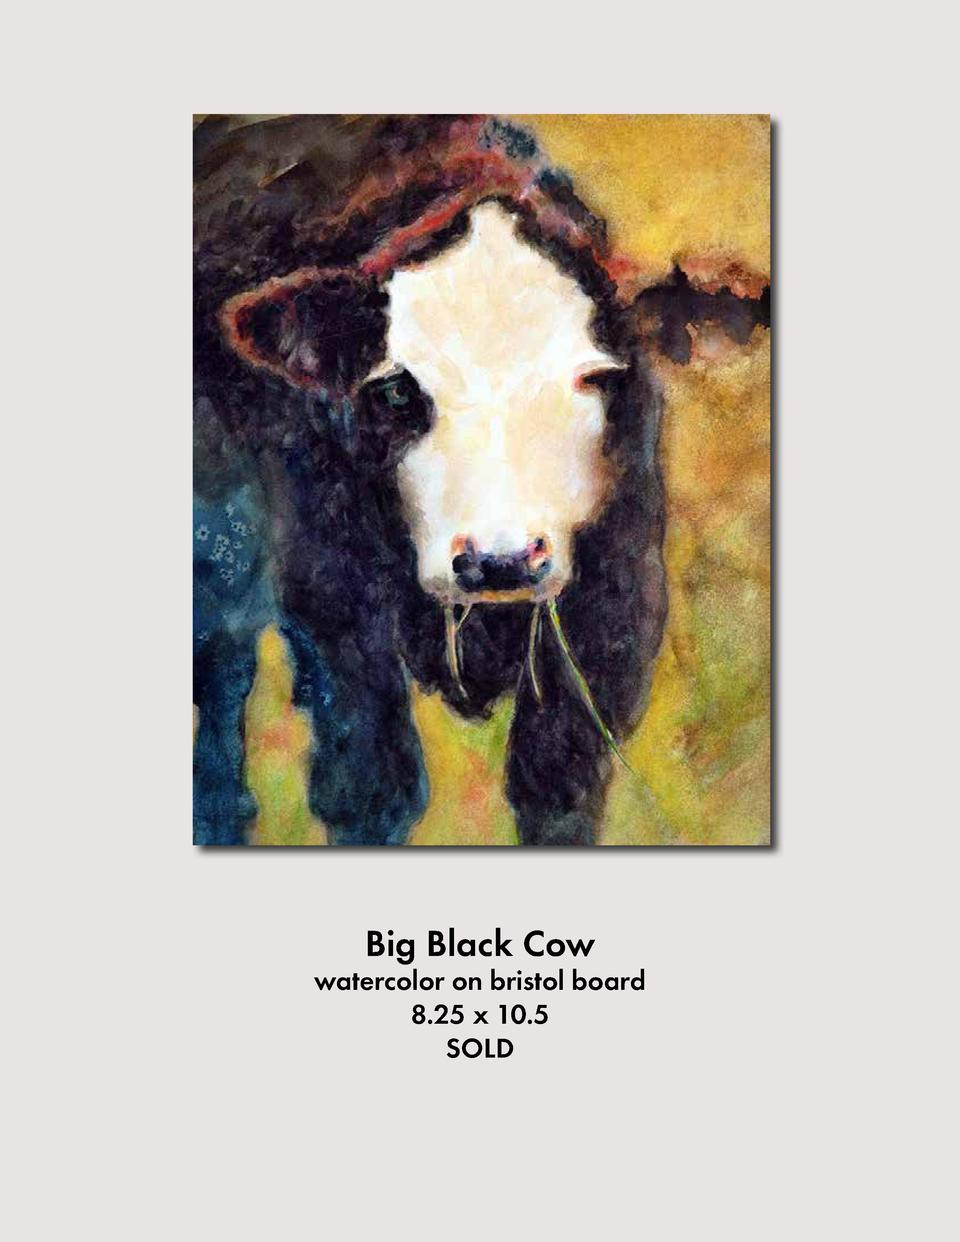 Big Black Cow  watercolor on bristol board 8.25 x 10.5 SOLD